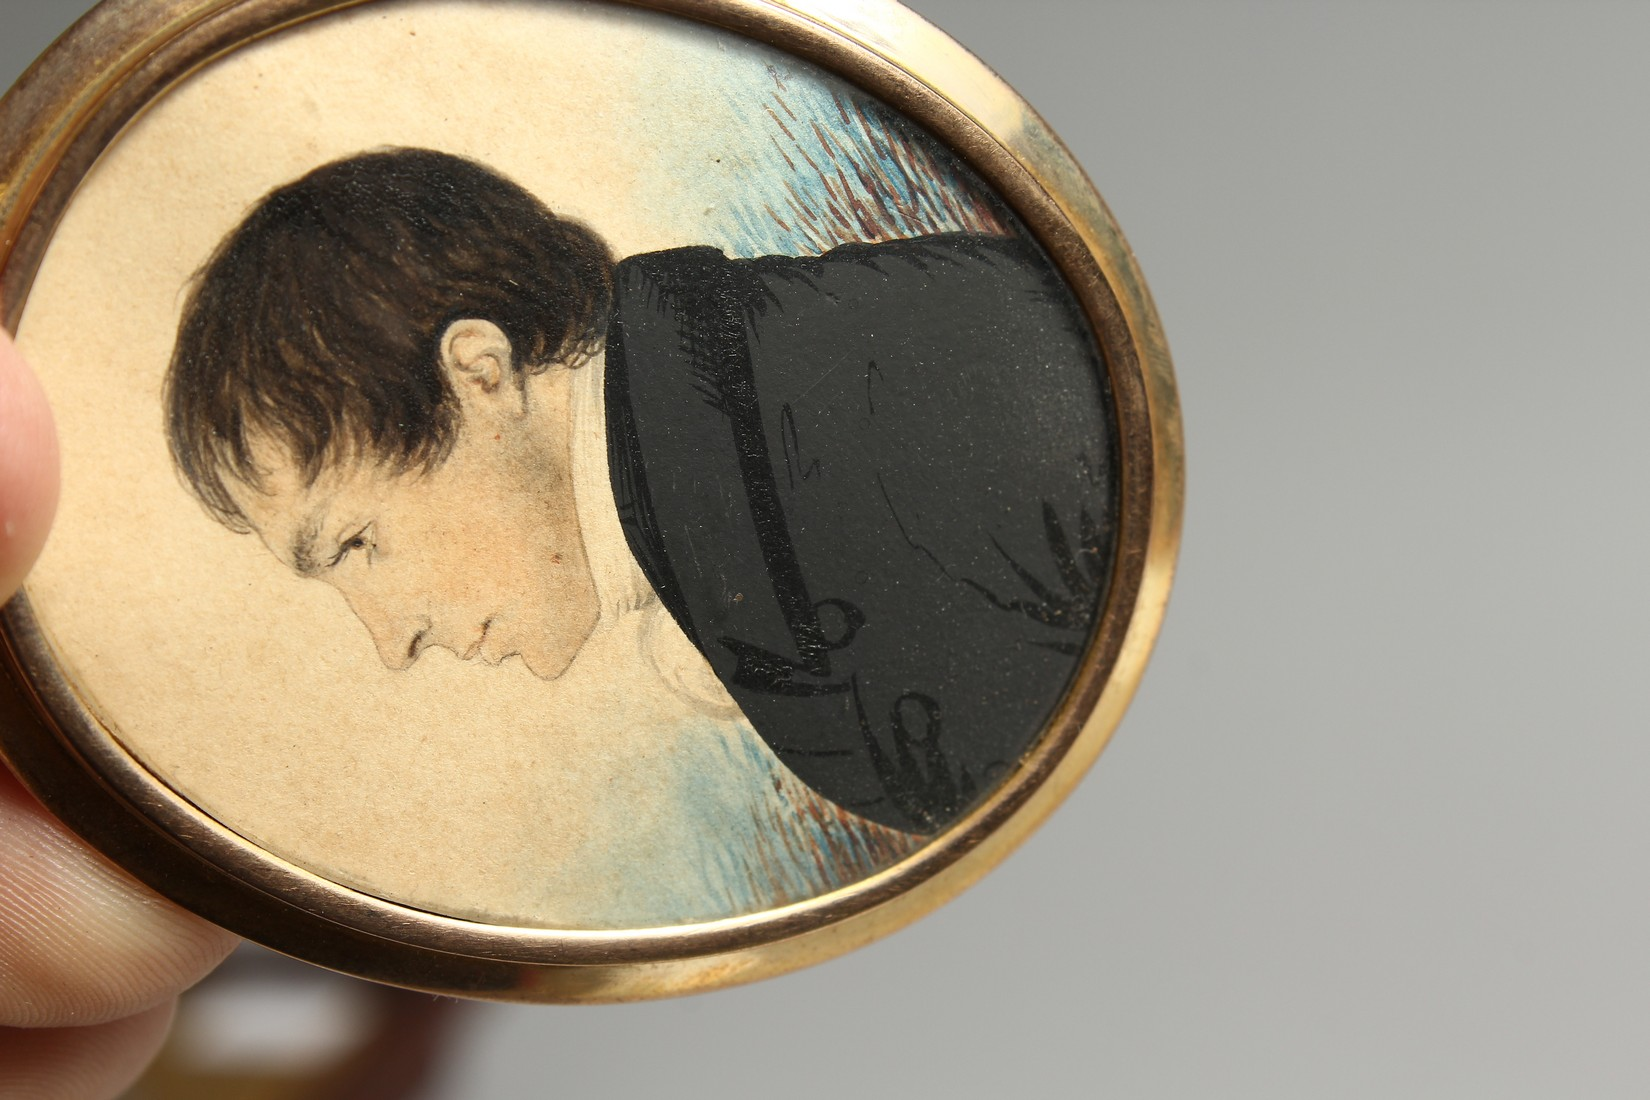 AN EARLY VICTORIAN OVAL MINIATURE OF A GENTLEMAN in a gilt frame. 2.25ins x 1.75ins - Image 5 of 7